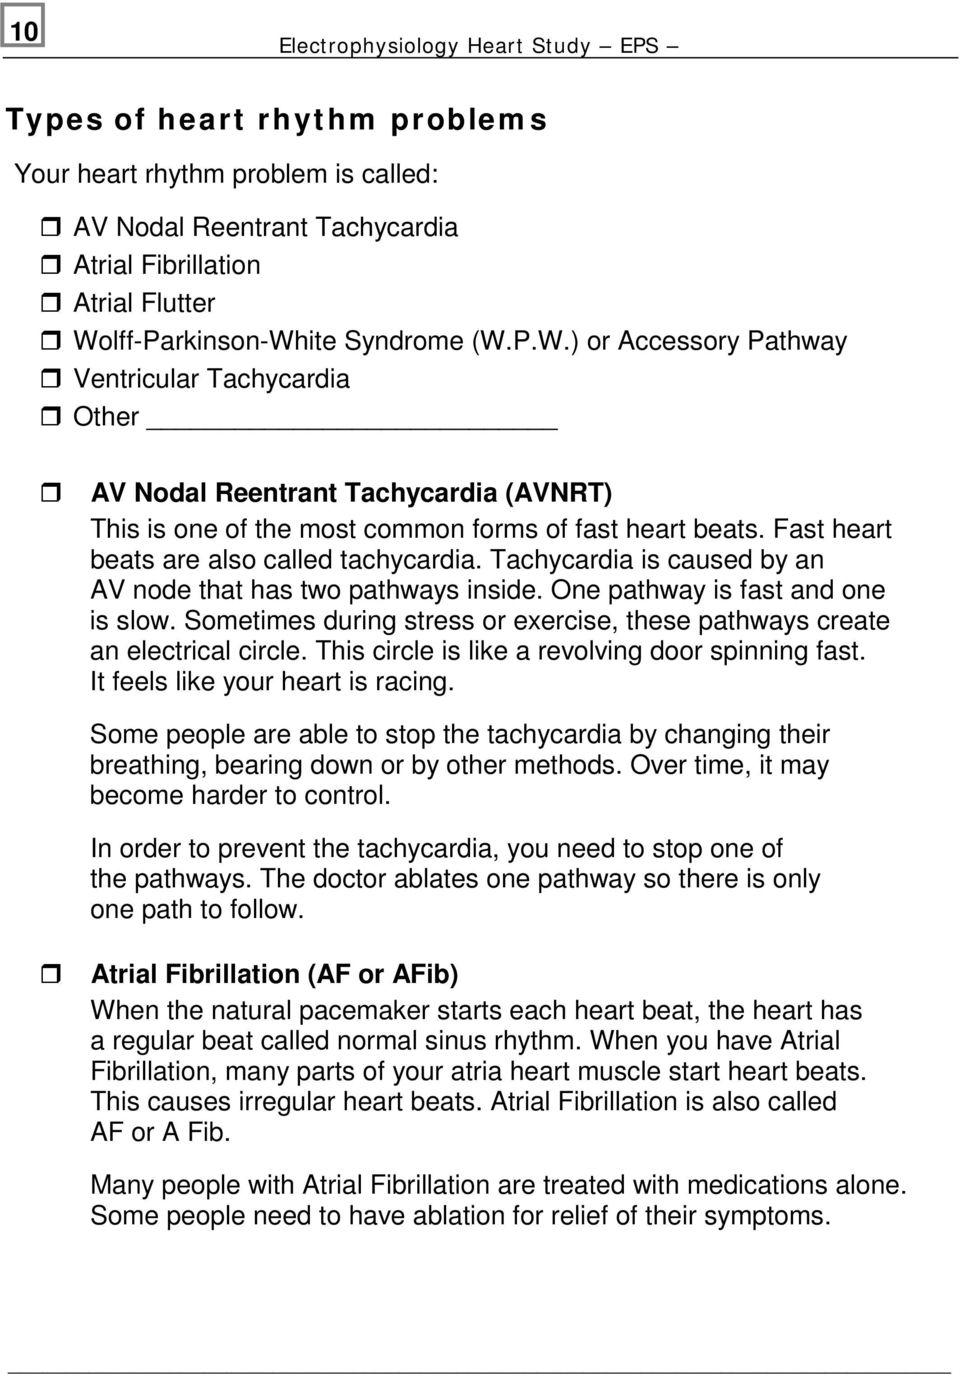 Fast heart beats are also called tachycardia. Tachycardia is caused by an AV node that has two pathways inside. One pathway is fast and one is slow.